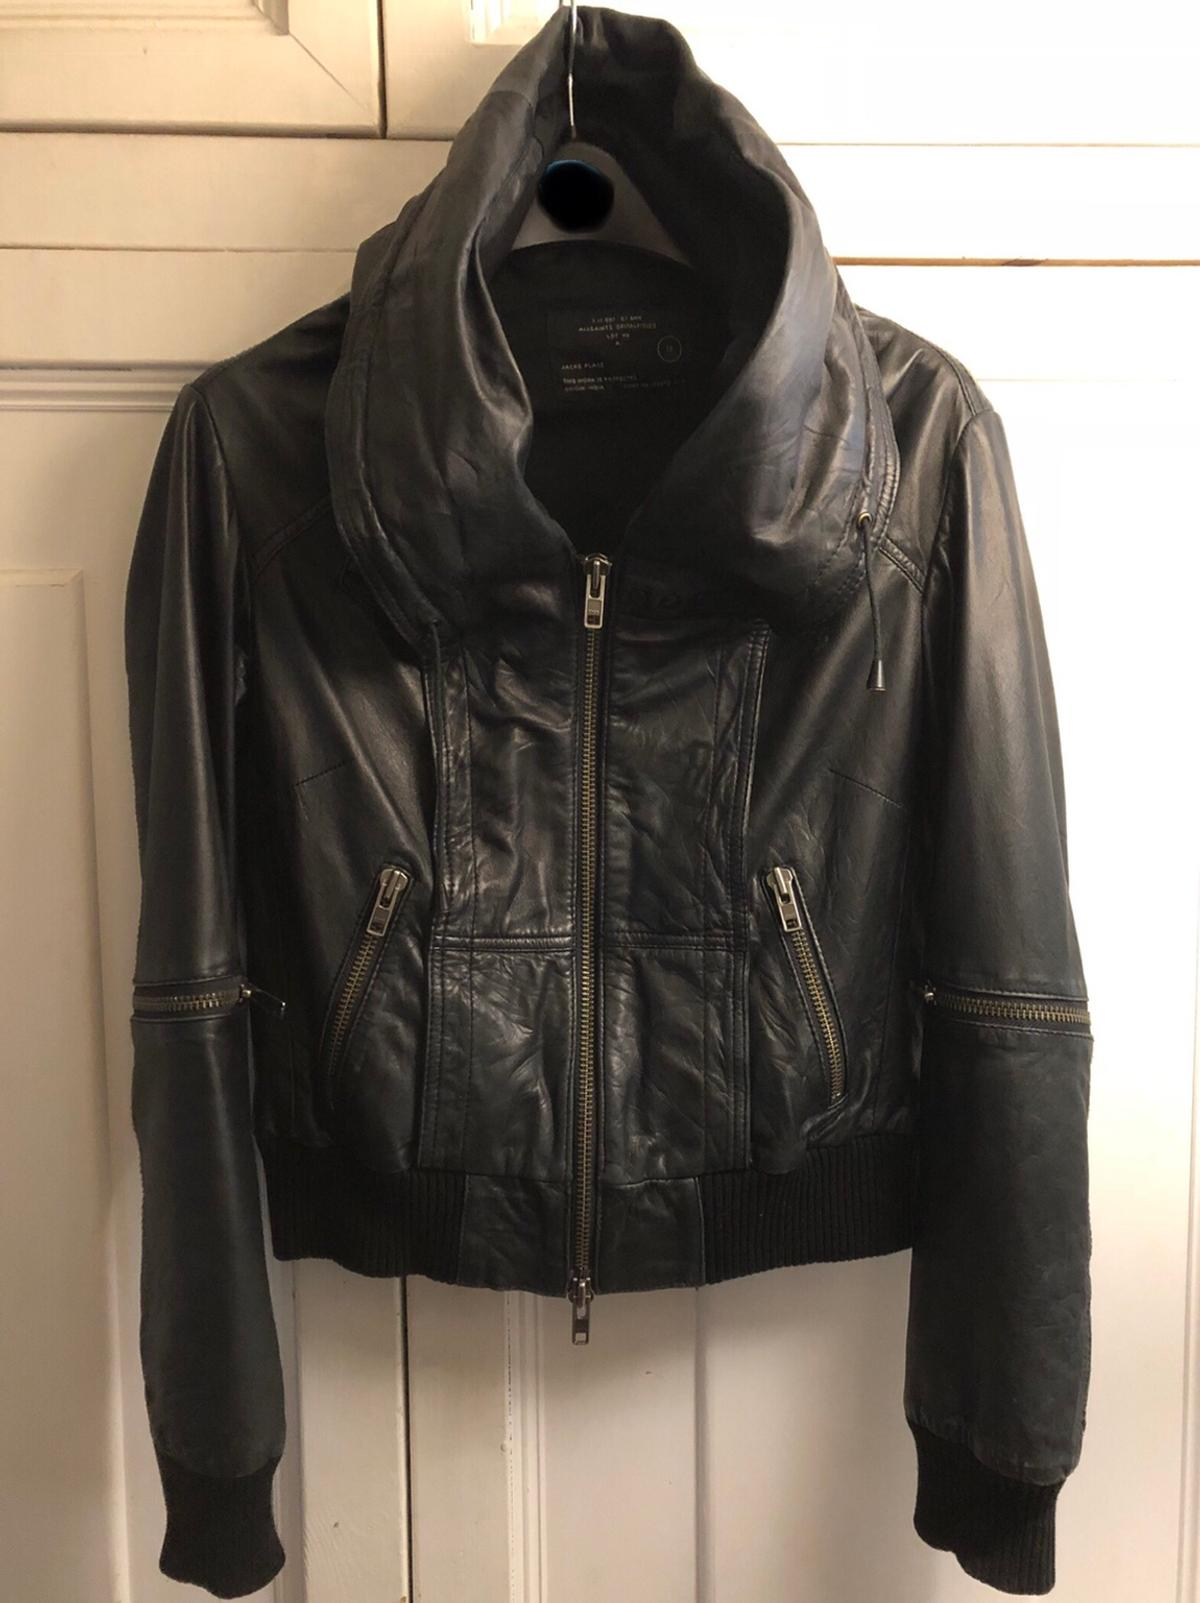 559c0a88a All Saints RARE Black Leather Cobra Jacket 12 in SW6 Fulham for ...